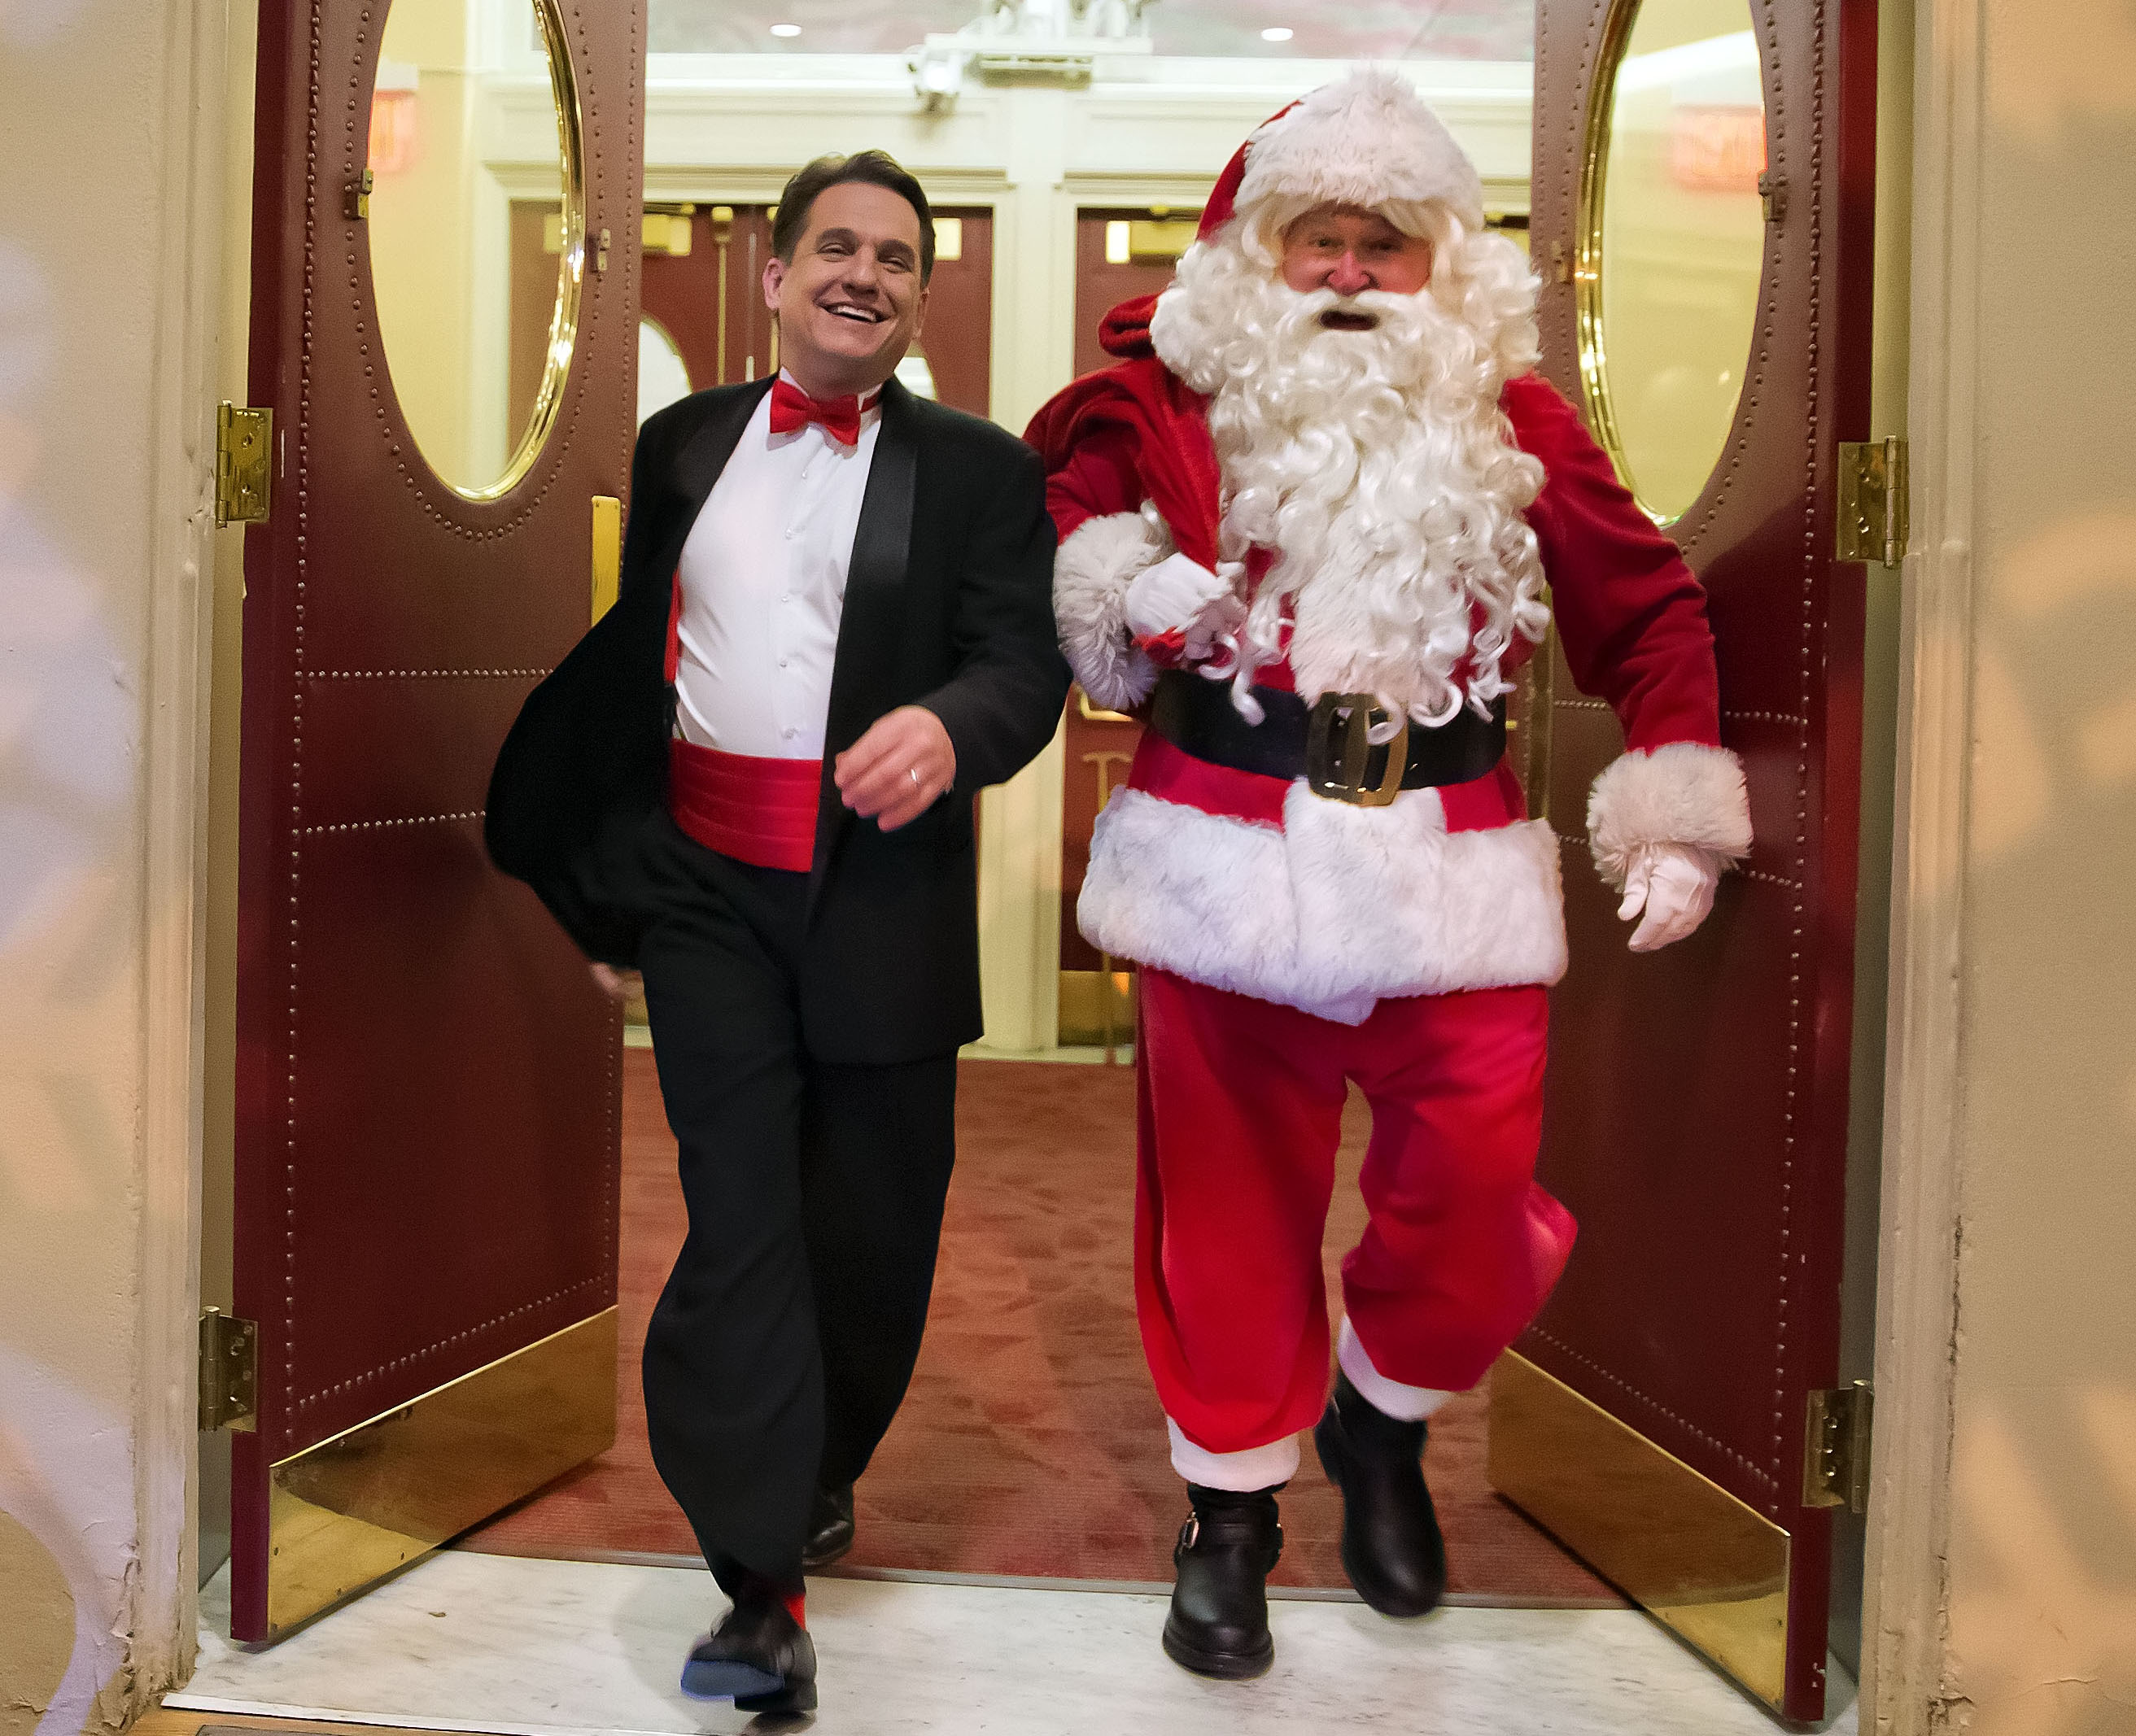 Keith Lockhart and Santa, photo by Winslow Townson